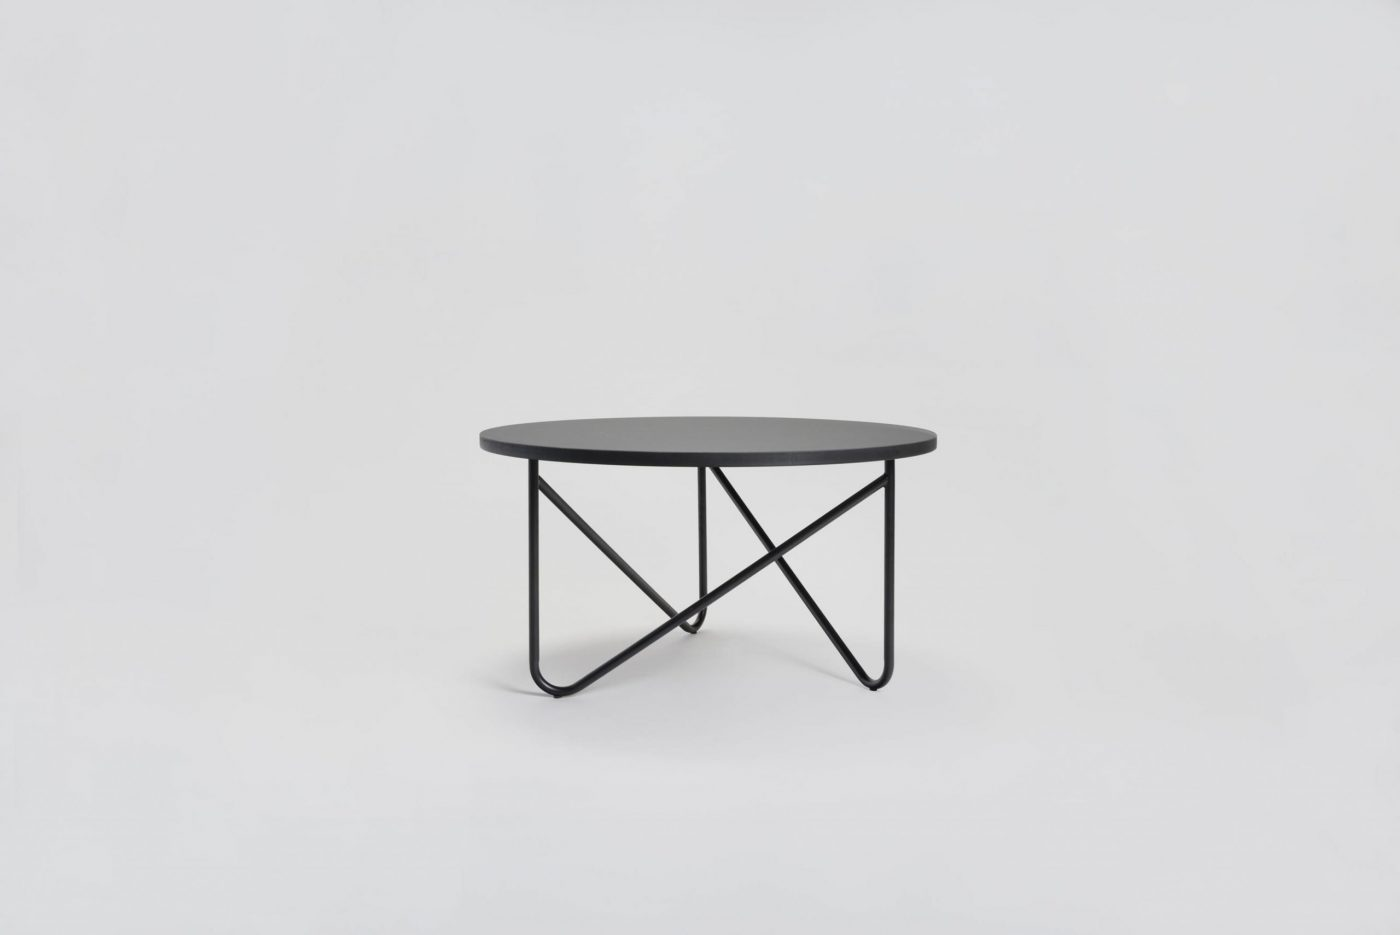 10 MYKILOS VVV TABLE BLACK GREEN ROSE  GRAY LINOLEUM scaled